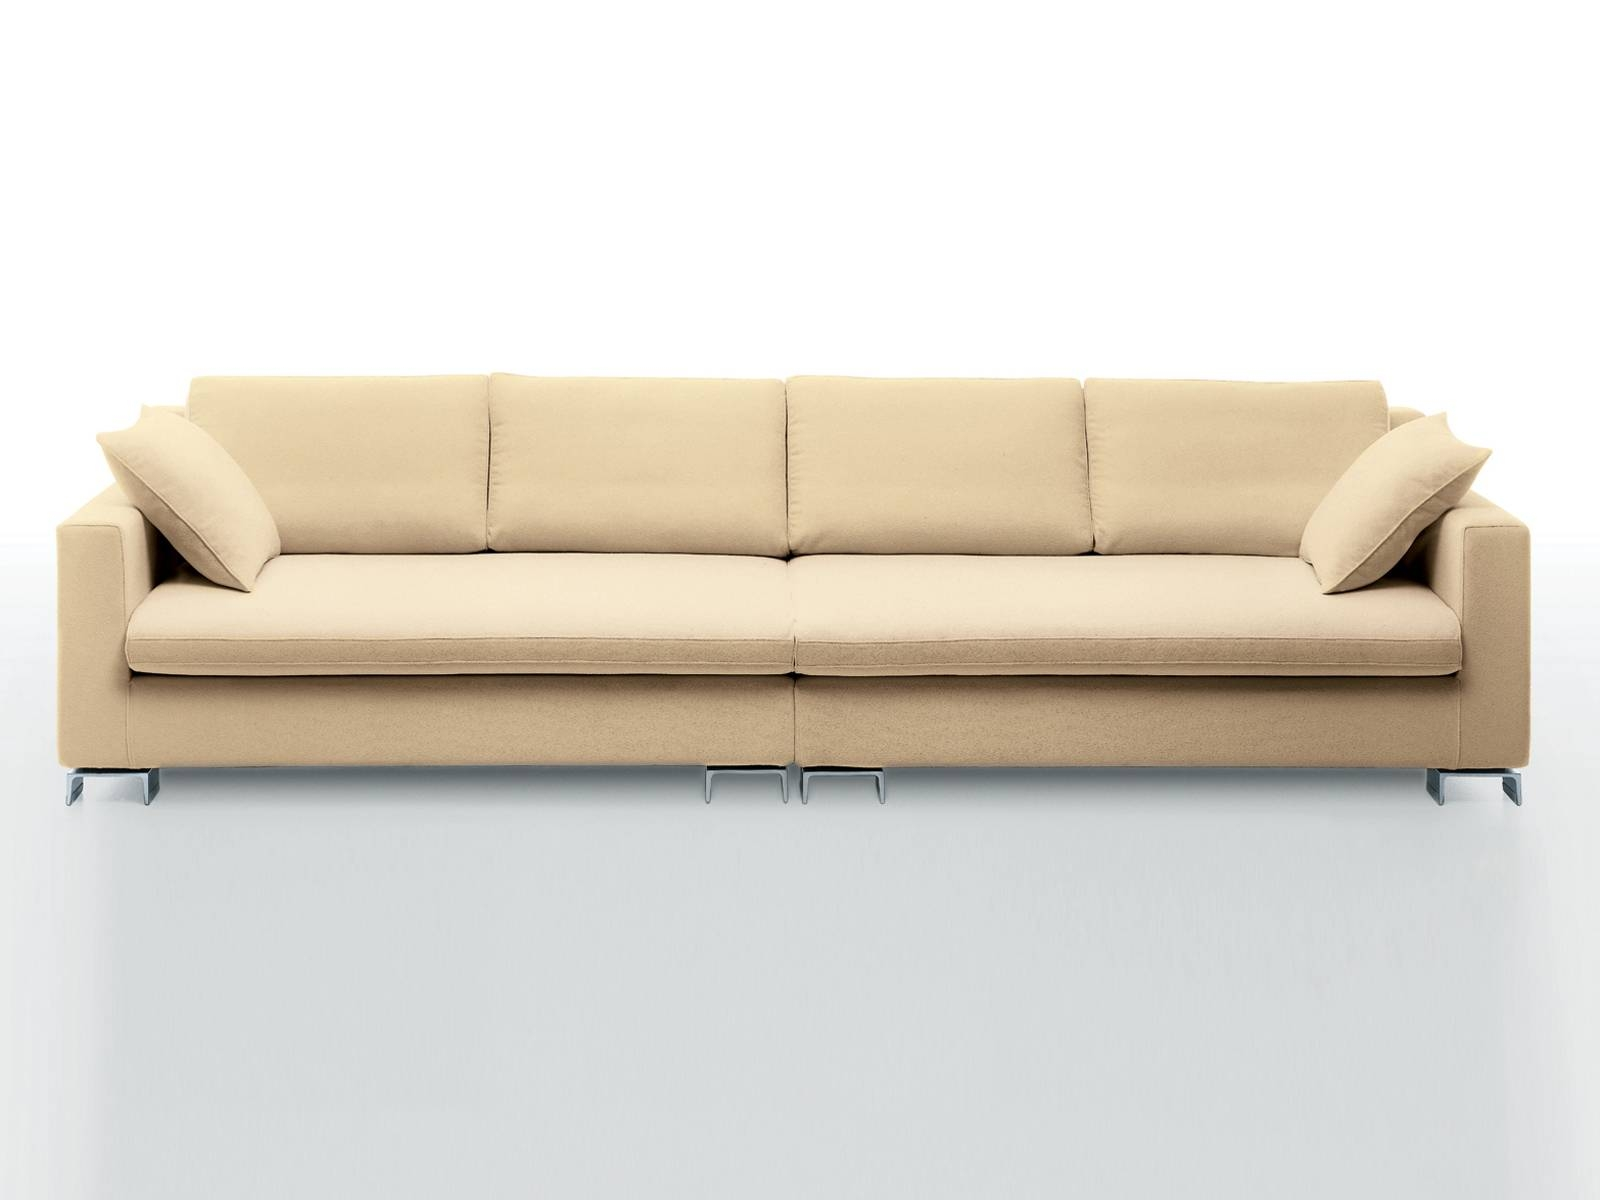 I 4 Mariani Sofas | Archiproducts in 4 Seater Couch (Image 24 of 30)